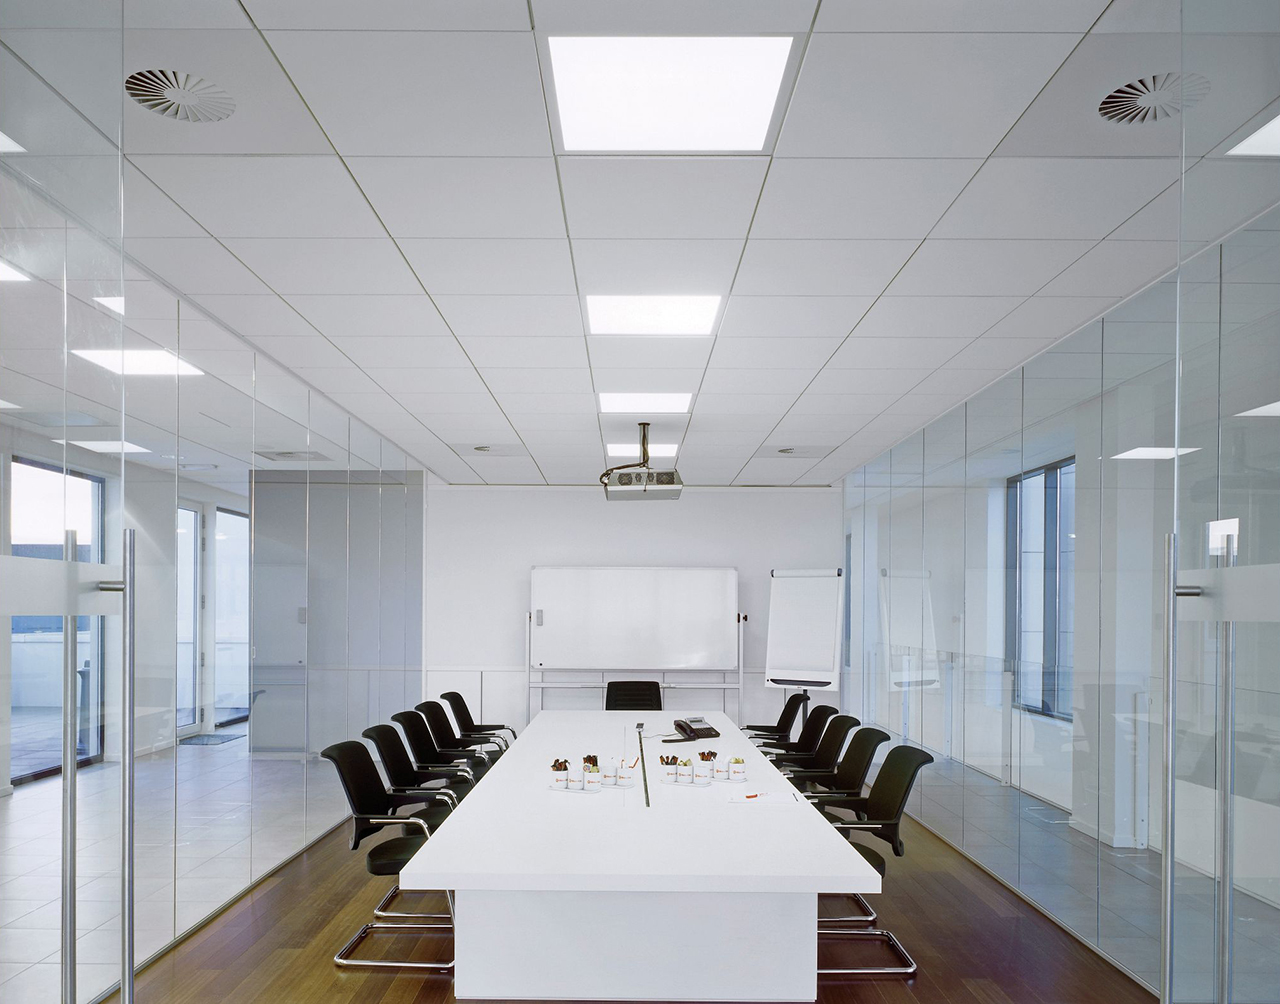 Suspended ceiling 18 access interiors suspended ceilings dailygadgetfo Choice Image